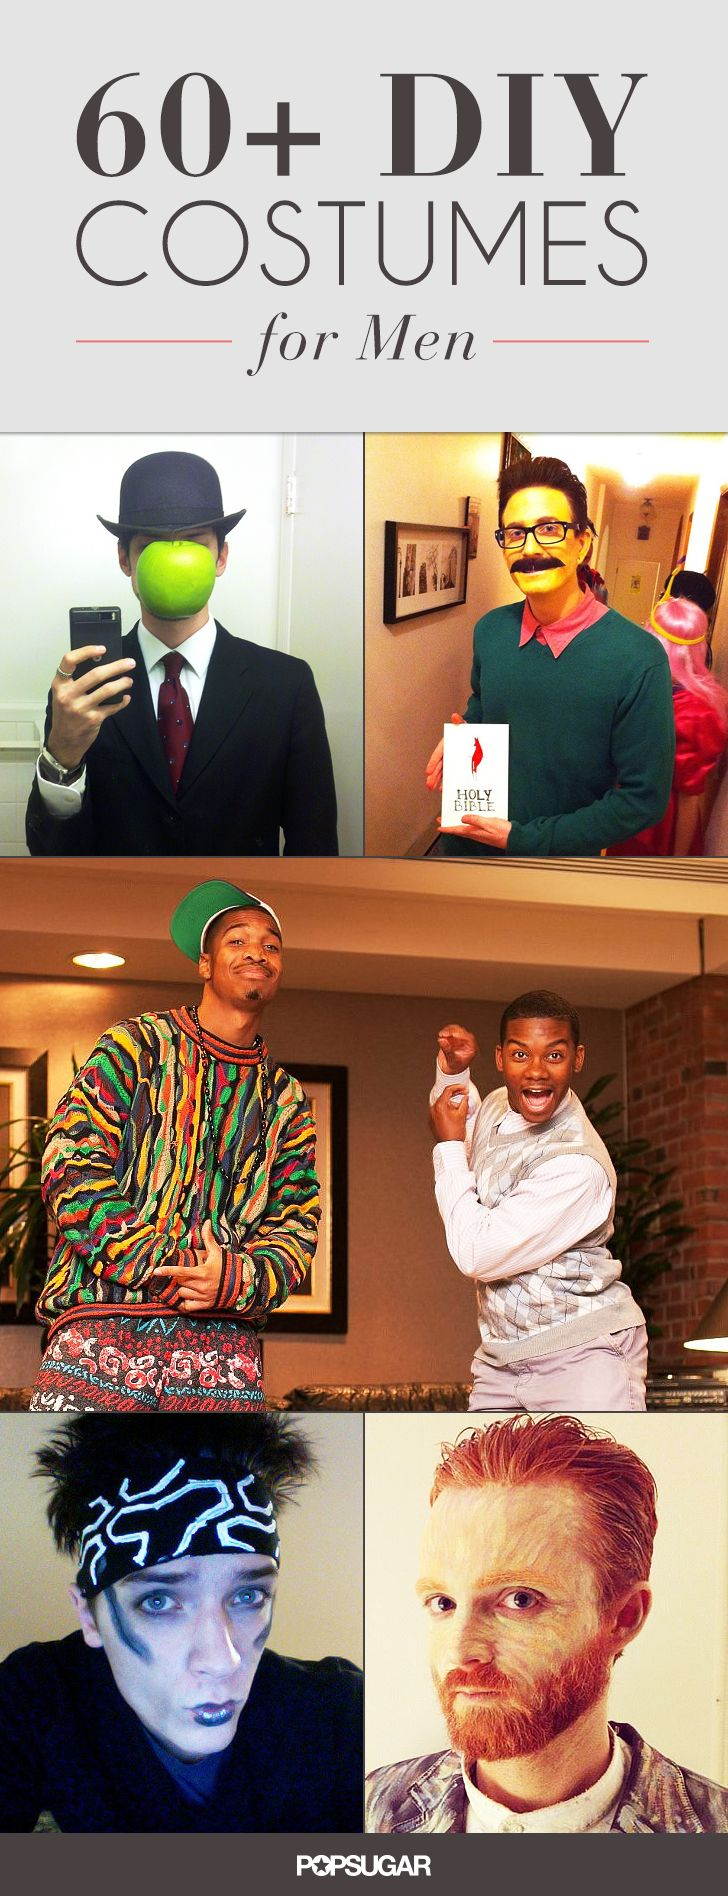 It's always a big dilemma trying to figure out what to be for Halloween. We made it easier for you this year by rounding up some of the best costumes we found for men on the web.